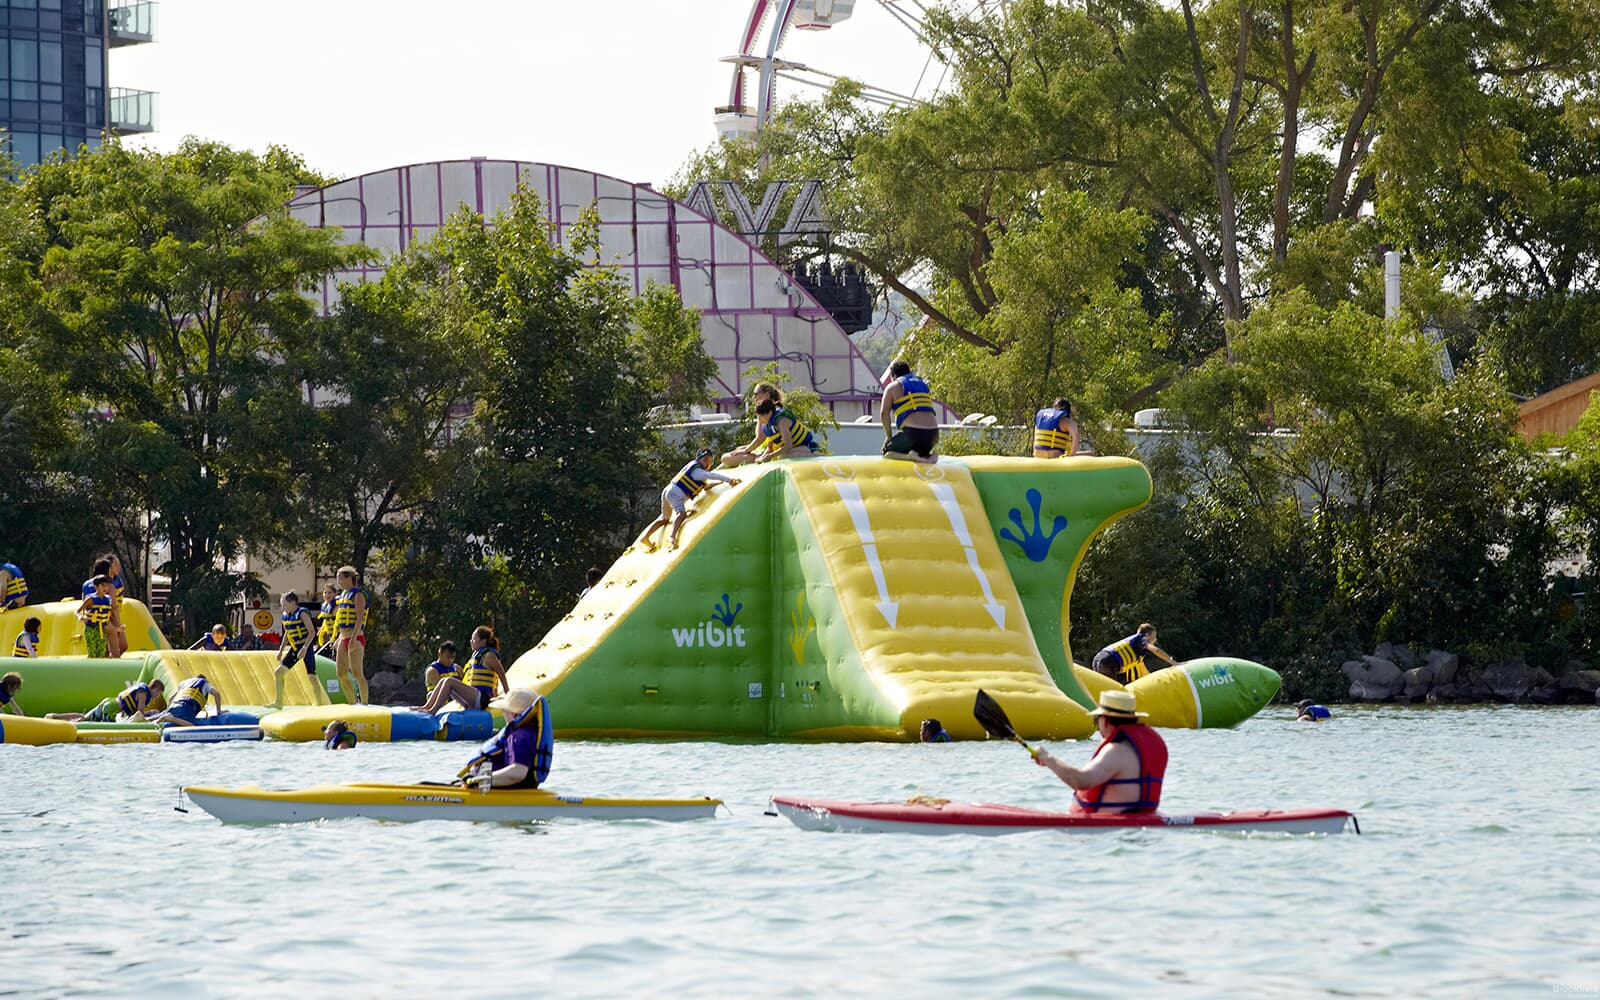 Inflatable Bouncy Castle on Water with Kids in Baxter, Ontario.